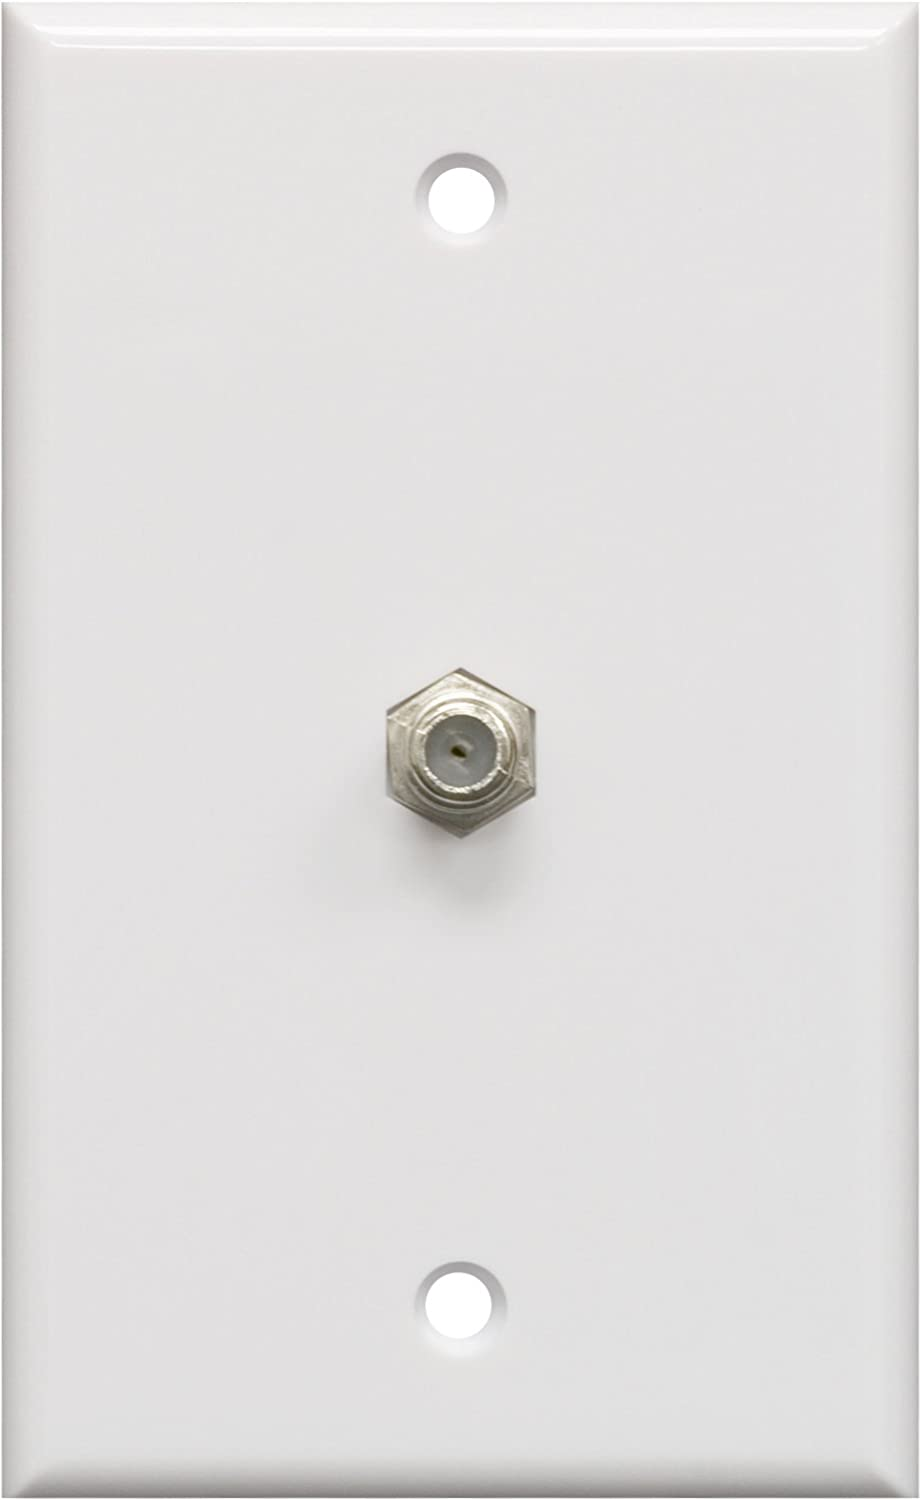 GE 40050 Coaxial Cable Wall Plate